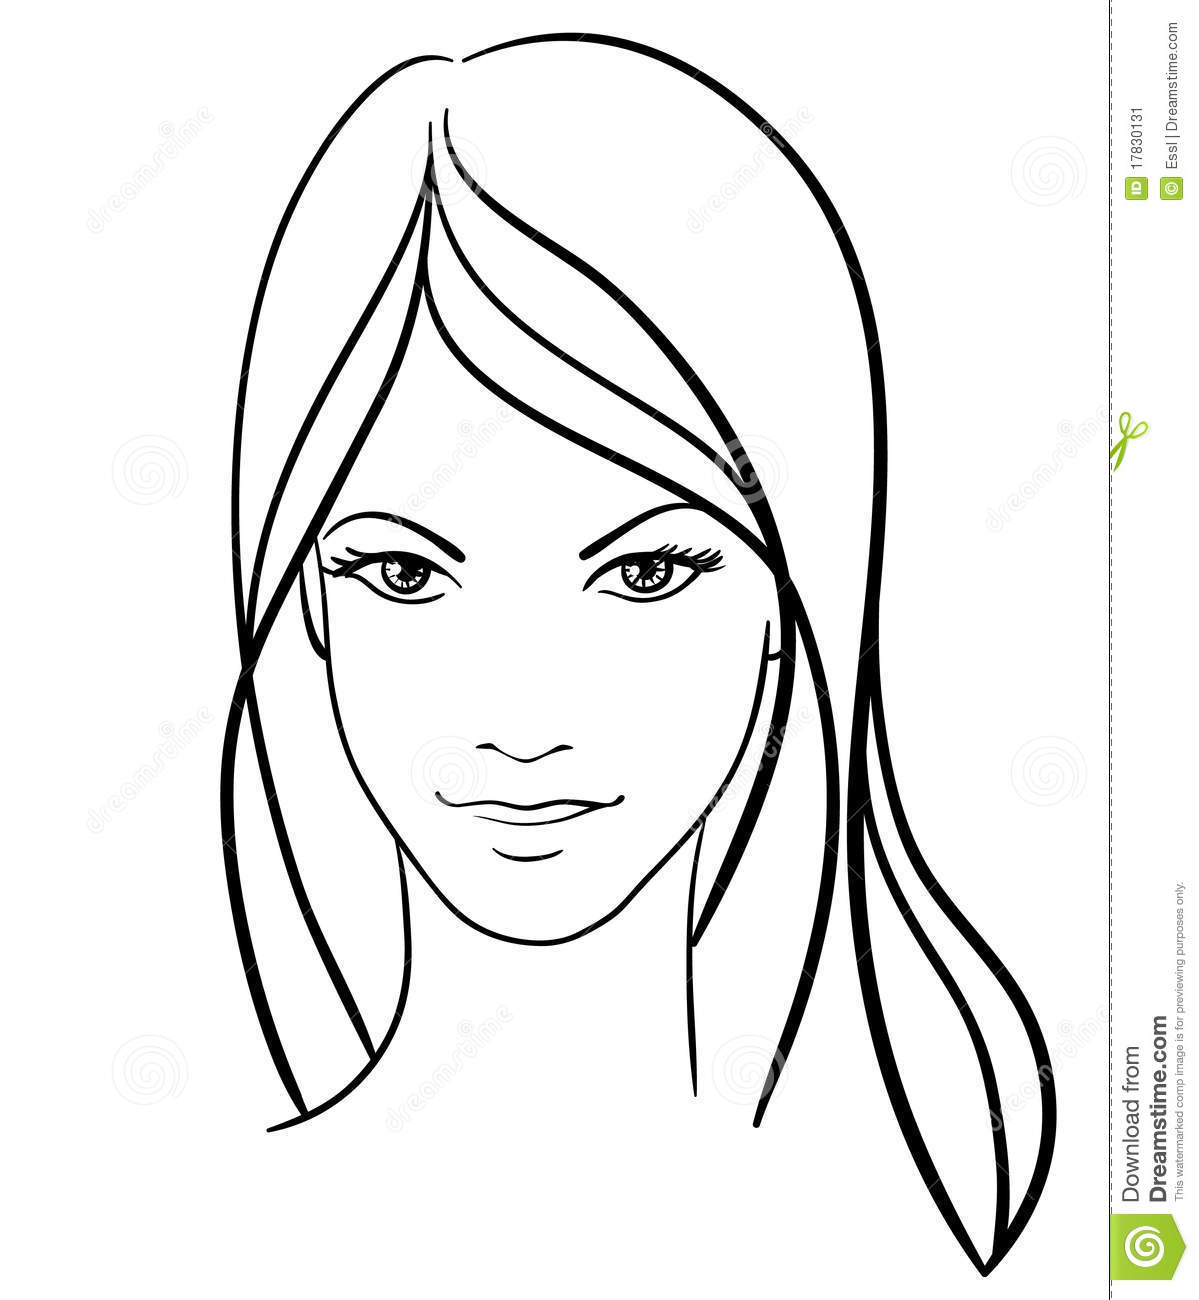 1199x1300 Human Face Drawing Images